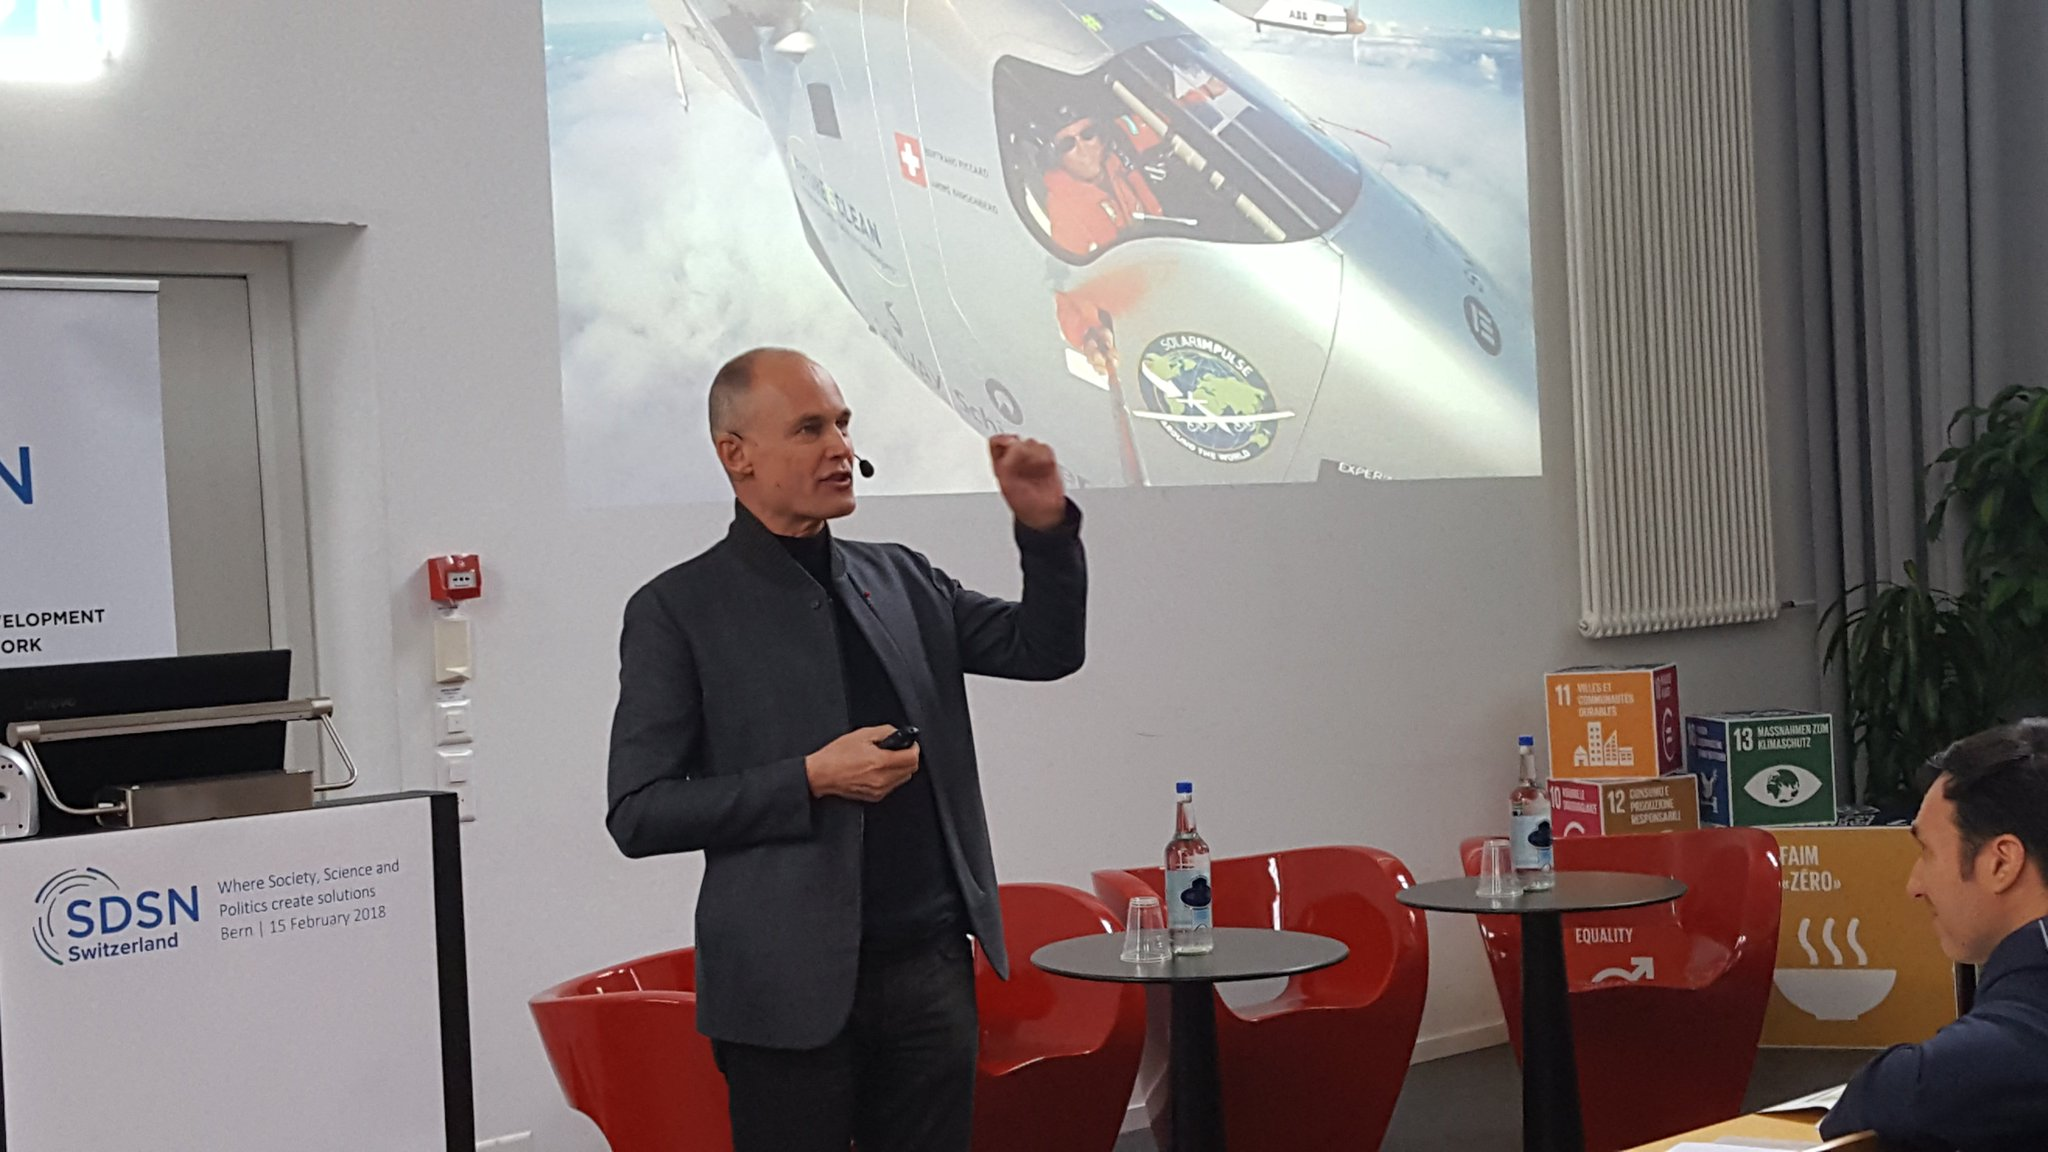 SSF congratulates @SDSNCH for their launch event with keynote from @bertrandpiccard #sdsnch https://t.co/E045lZexwk